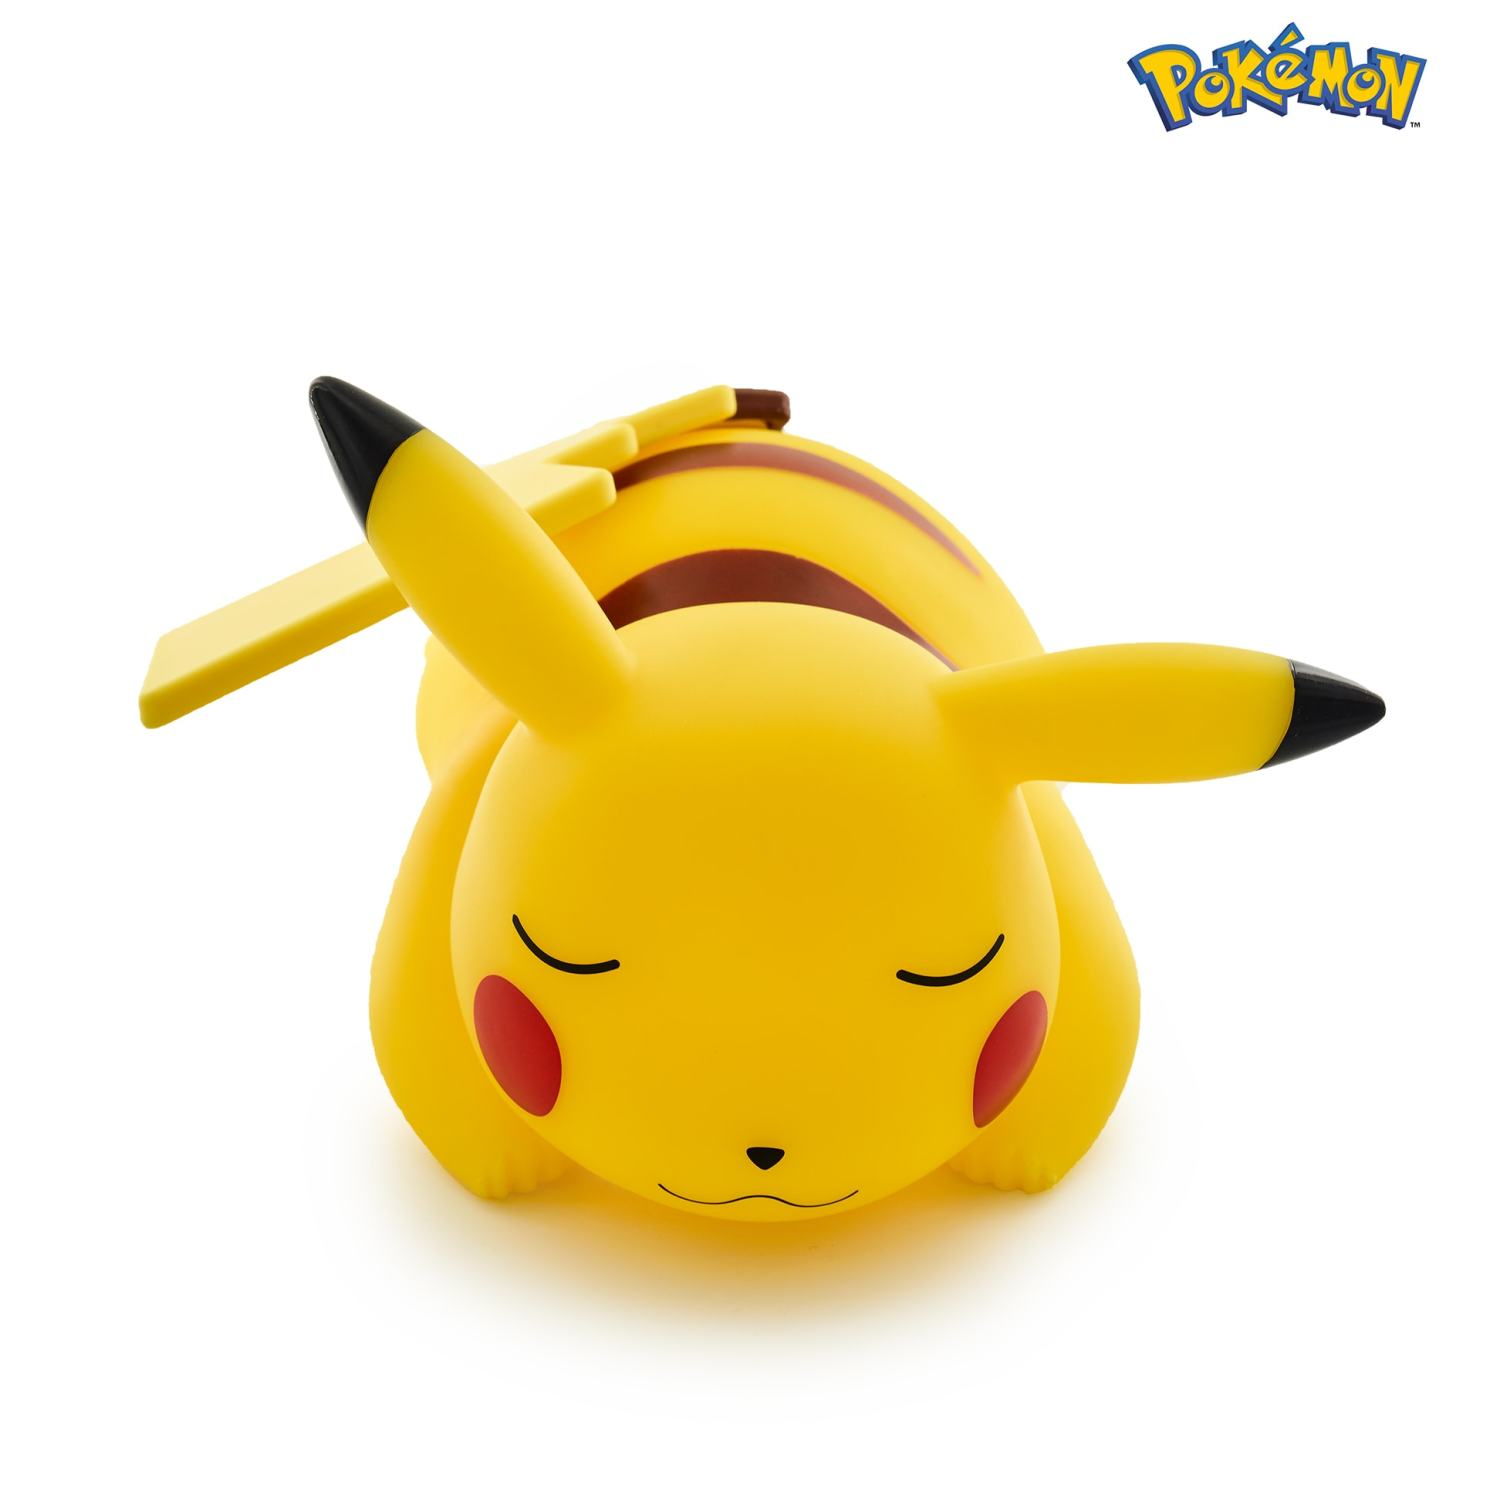 Sleeping Pikachu 10in LED Lamp